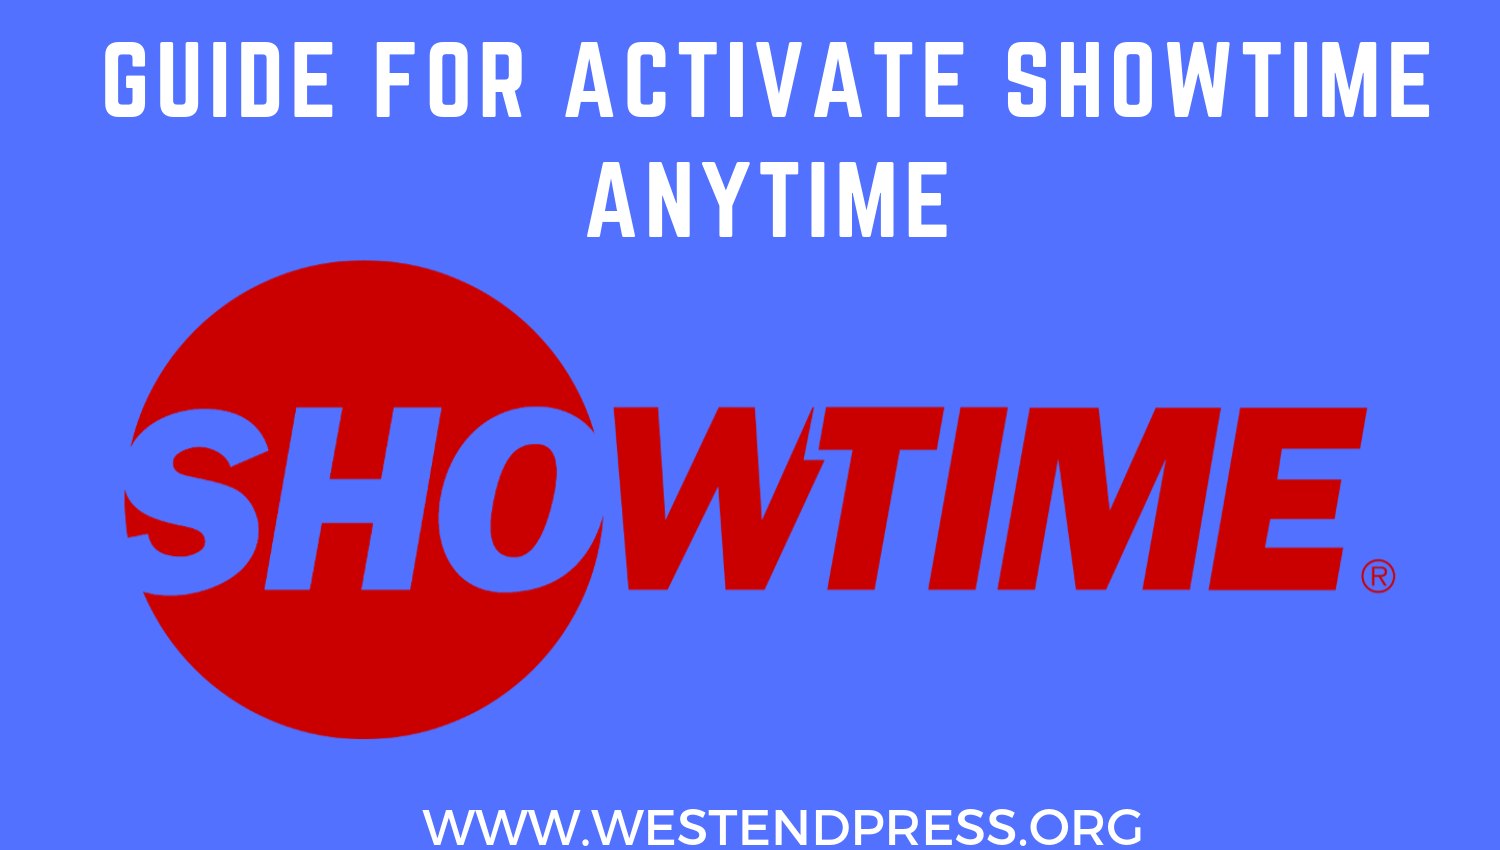 Guide for activate Showtime anytime